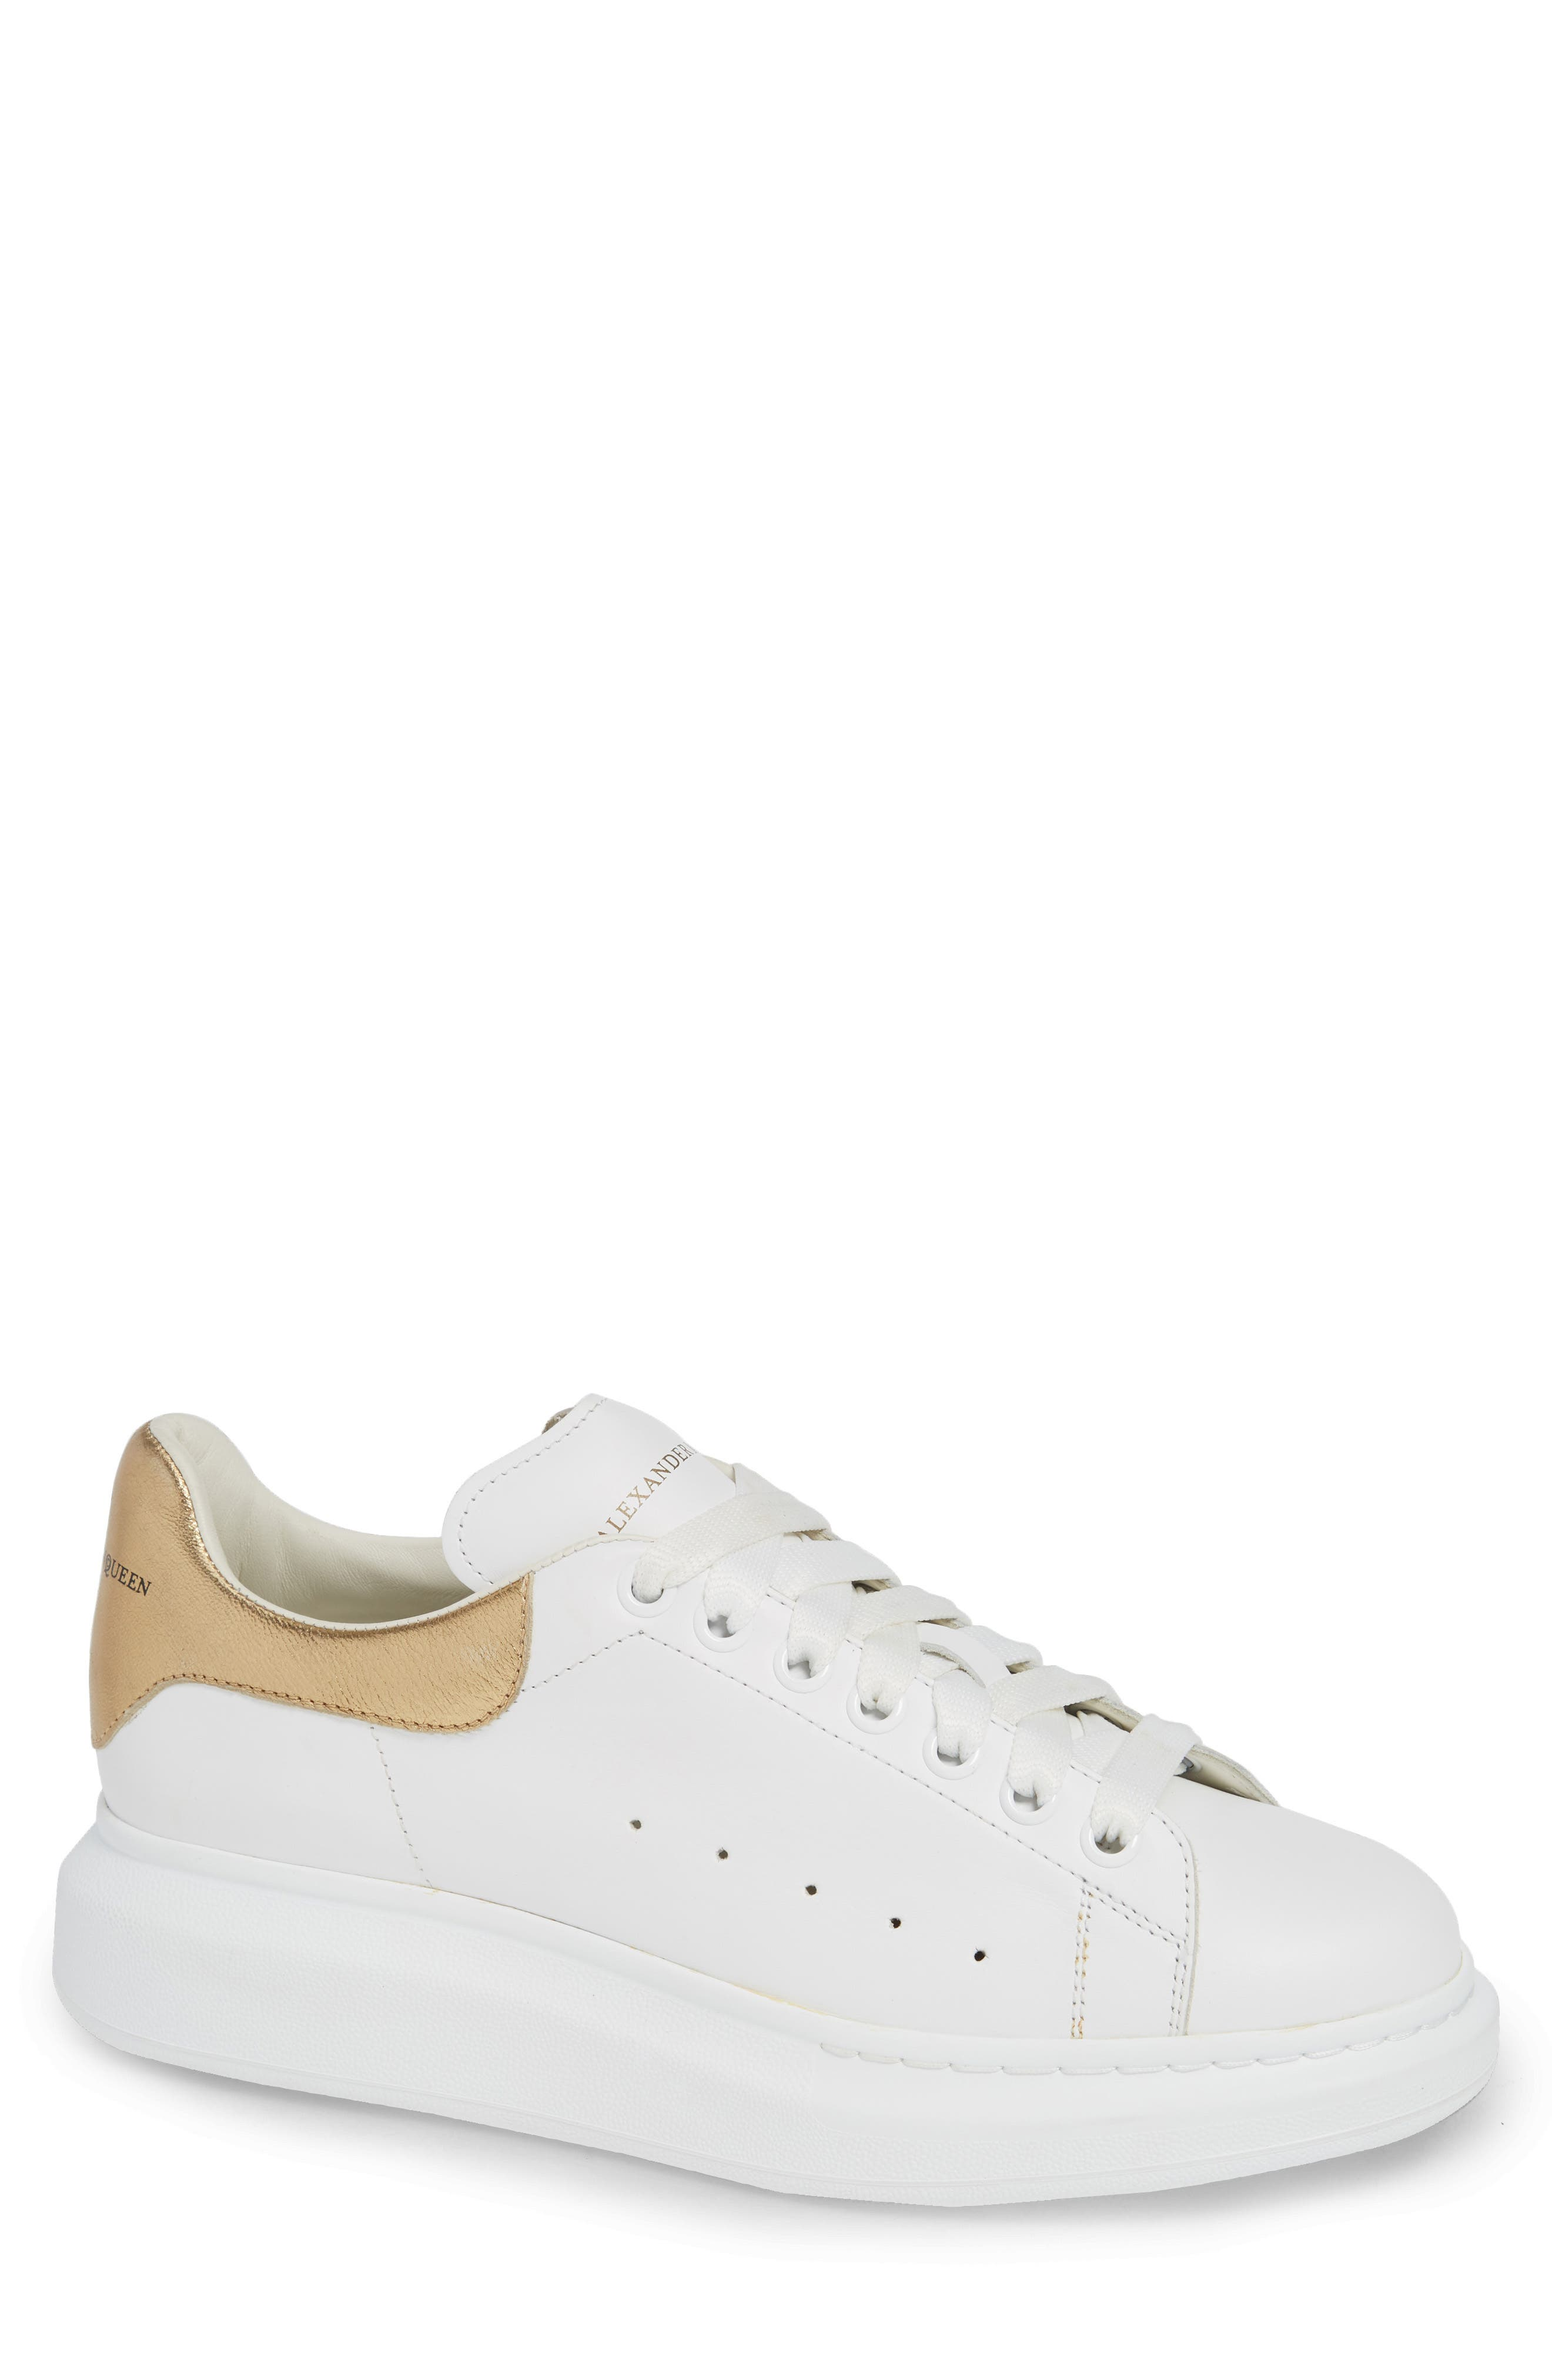 ALEXANDER MCQUEEN, Oversized Sneaker, Main thumbnail 1, color, WHITE/ GOLD